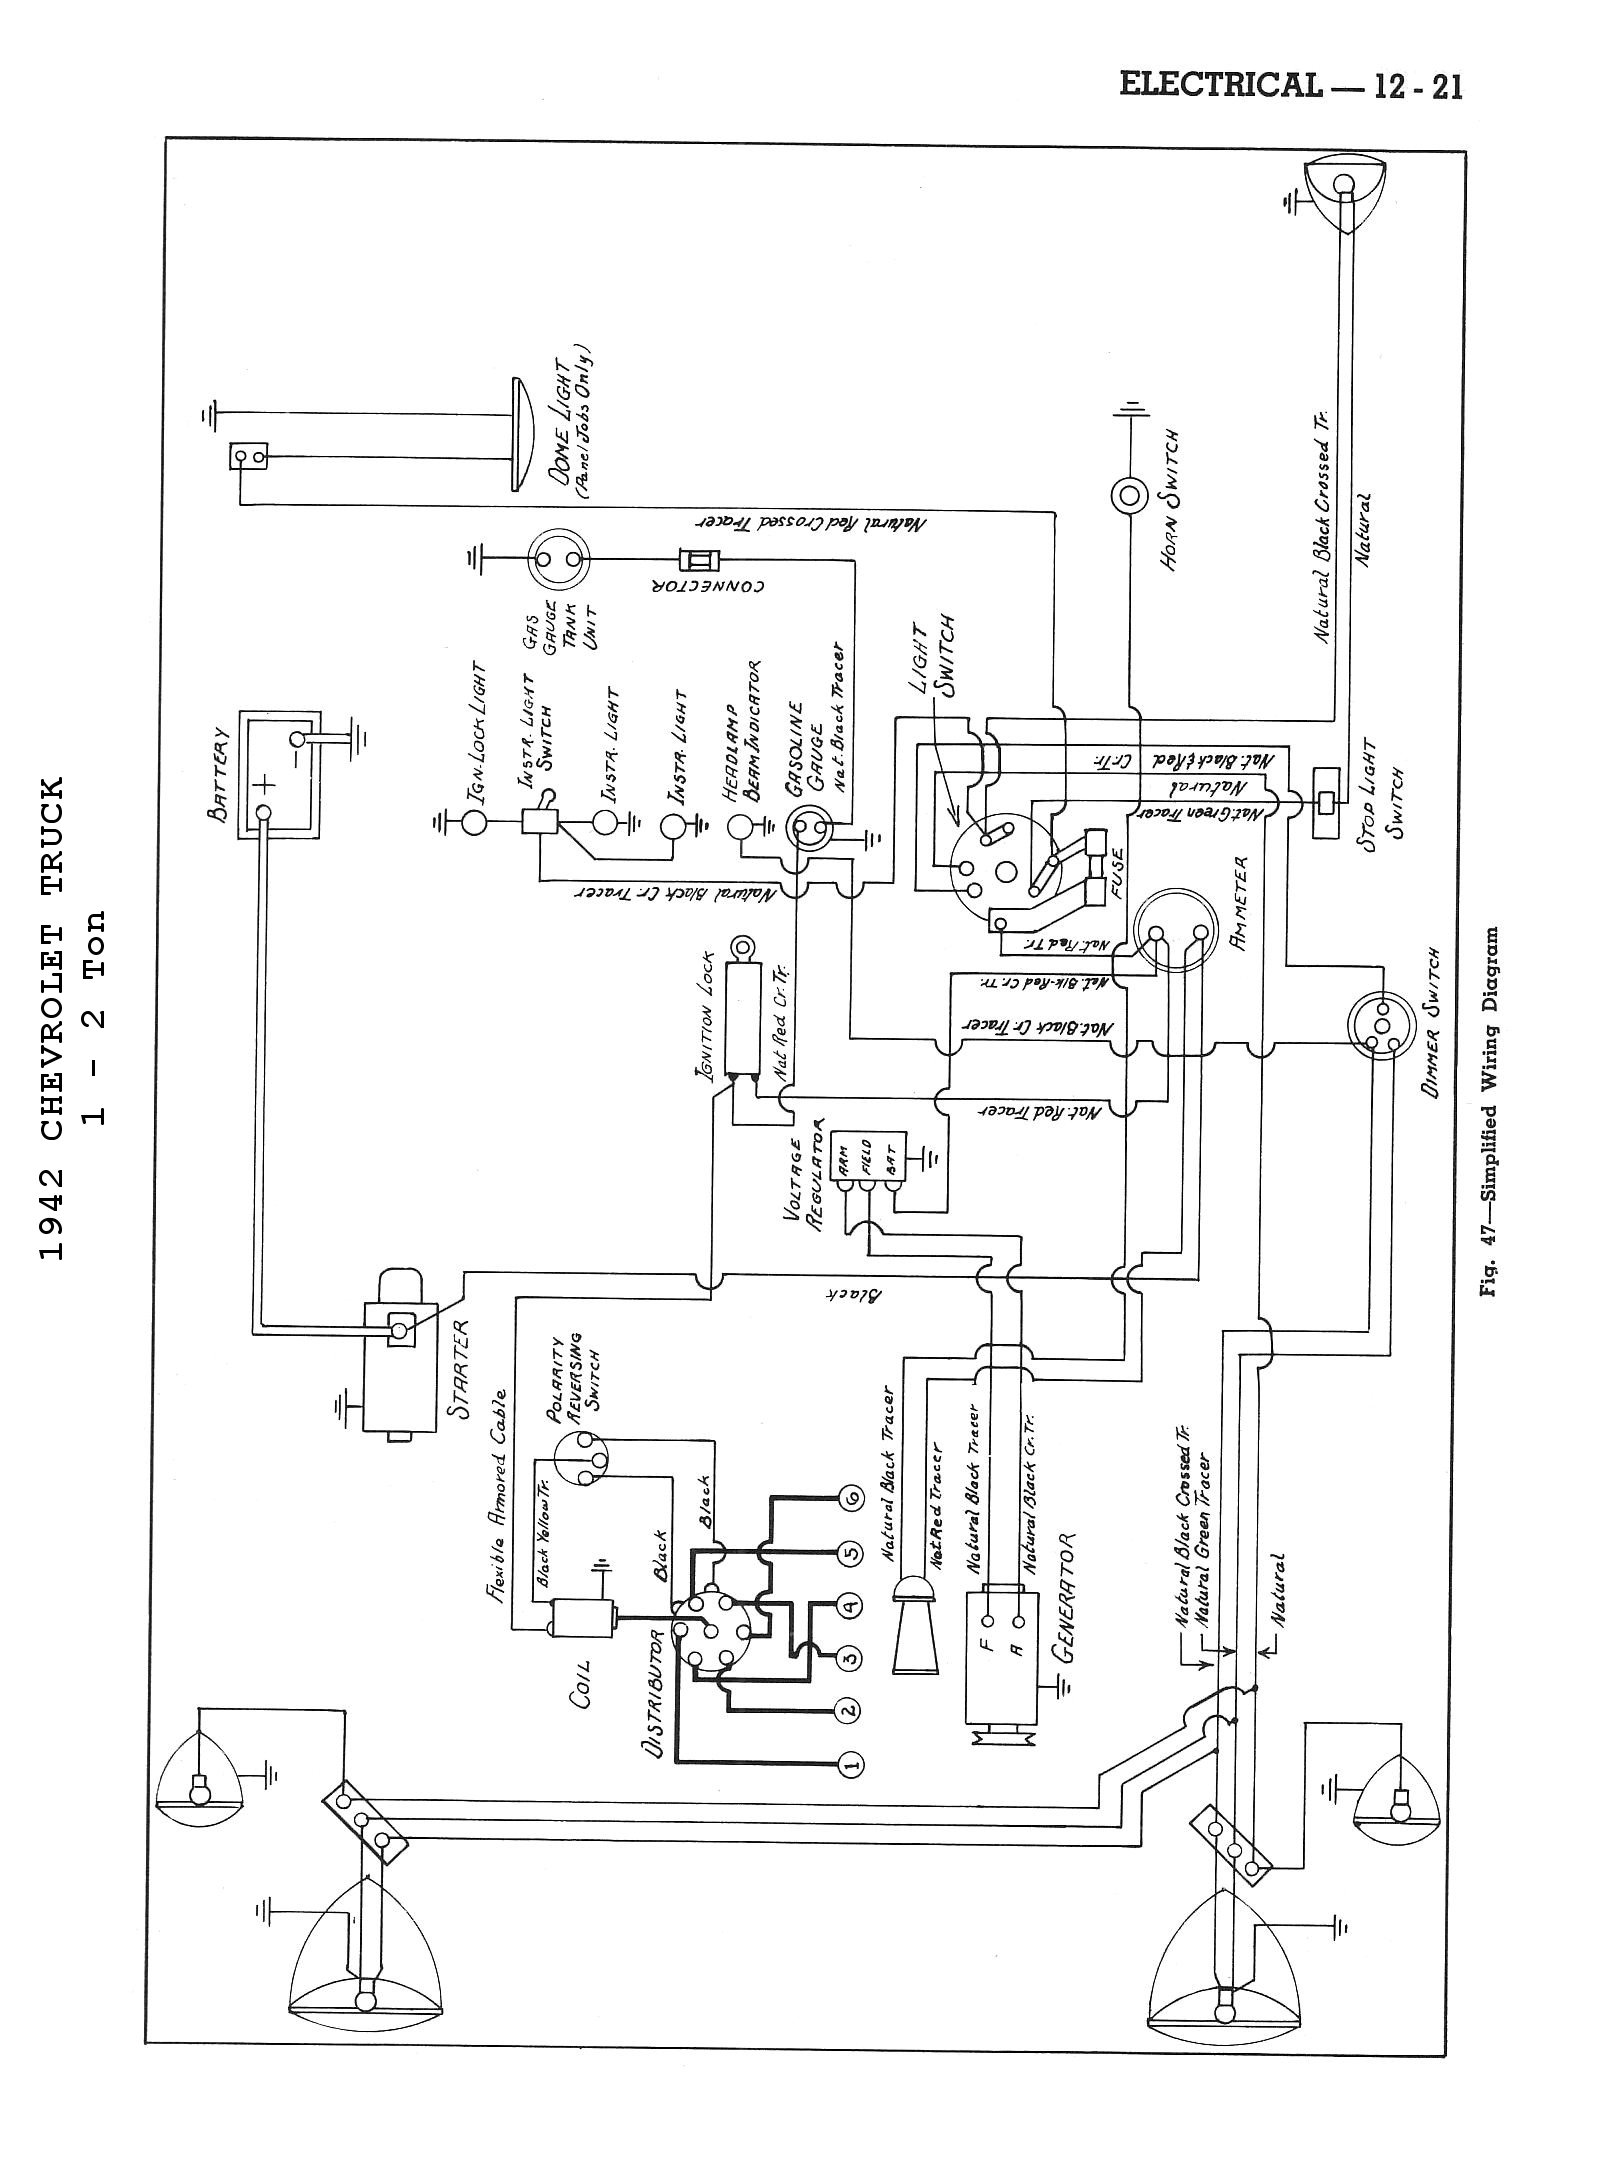 Horn Relay Wiring Schematic | Wiring Liry on ez wiring harness diagram, peterbilt headlight wiring diagram, chevy truck steering column diagram, chevy silverado horn wiring diagram, chevy horn button assembly diagram, chrysler horn relay wiring diagram, car horn diagram, air horn relay wiring diagram, chevy turn signal relay wiring diagram,